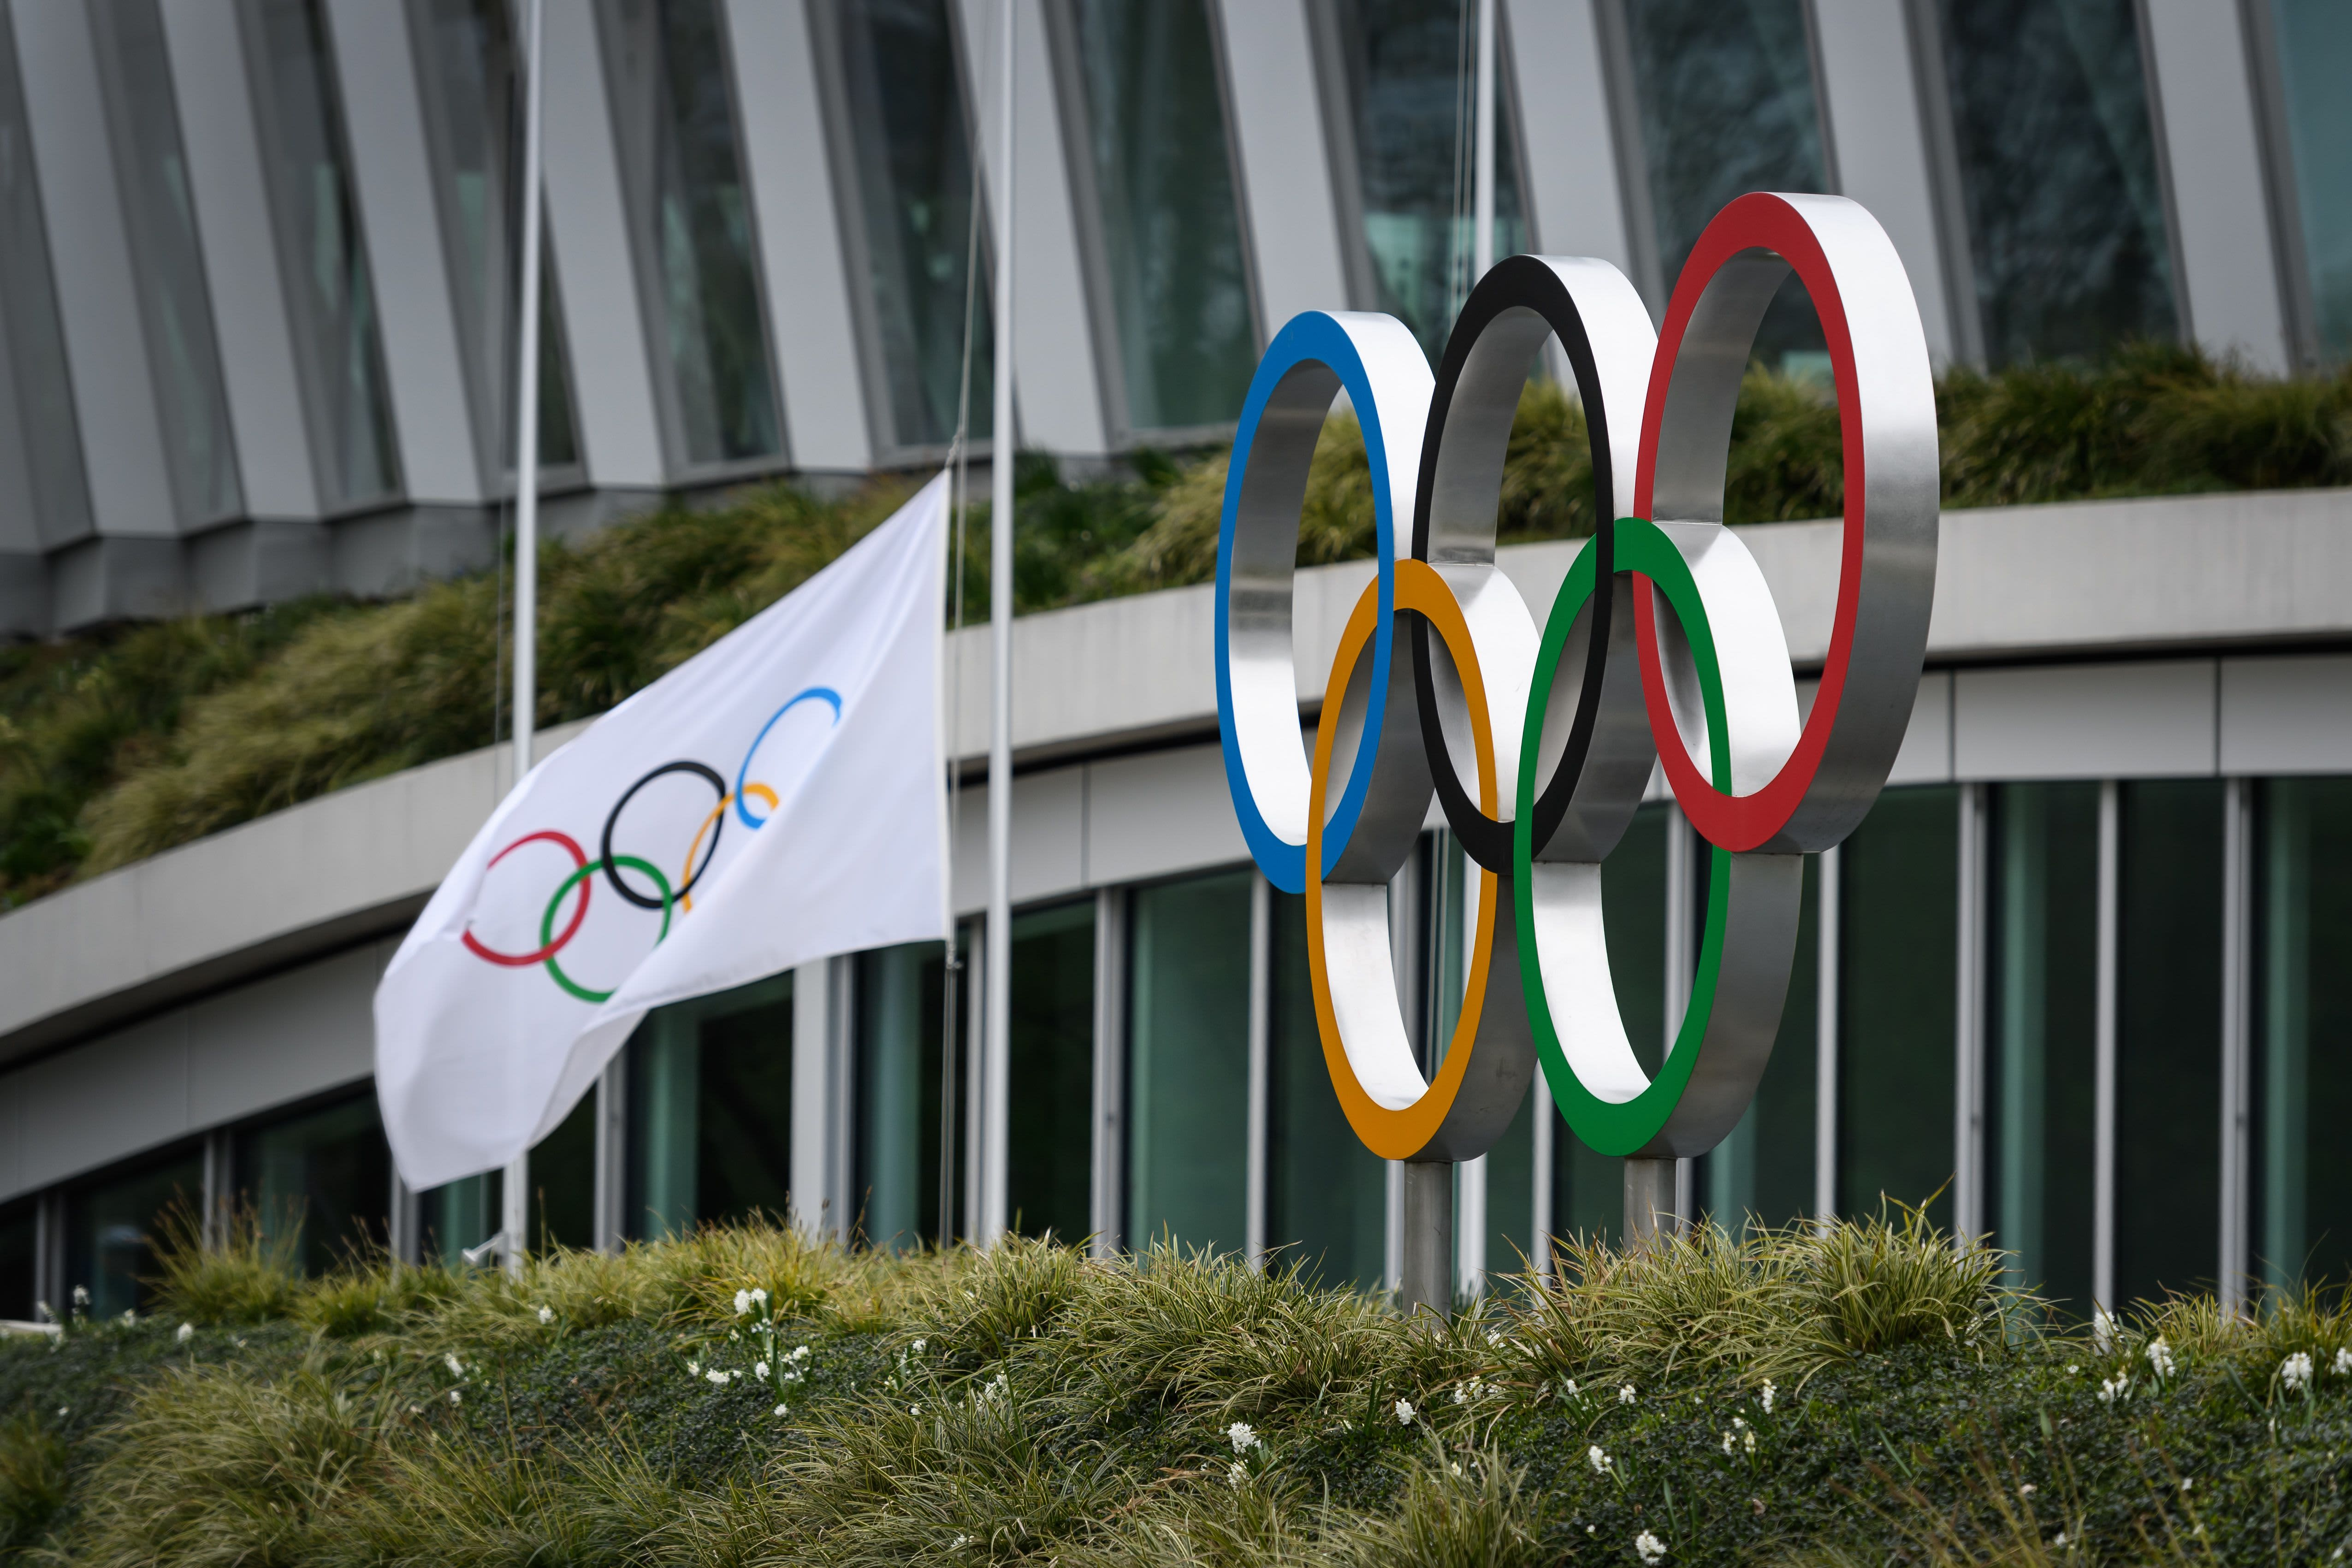 Over 160 human rights groups call on International Olympic Committee chief to revoke 2022 Beijing Winter Games